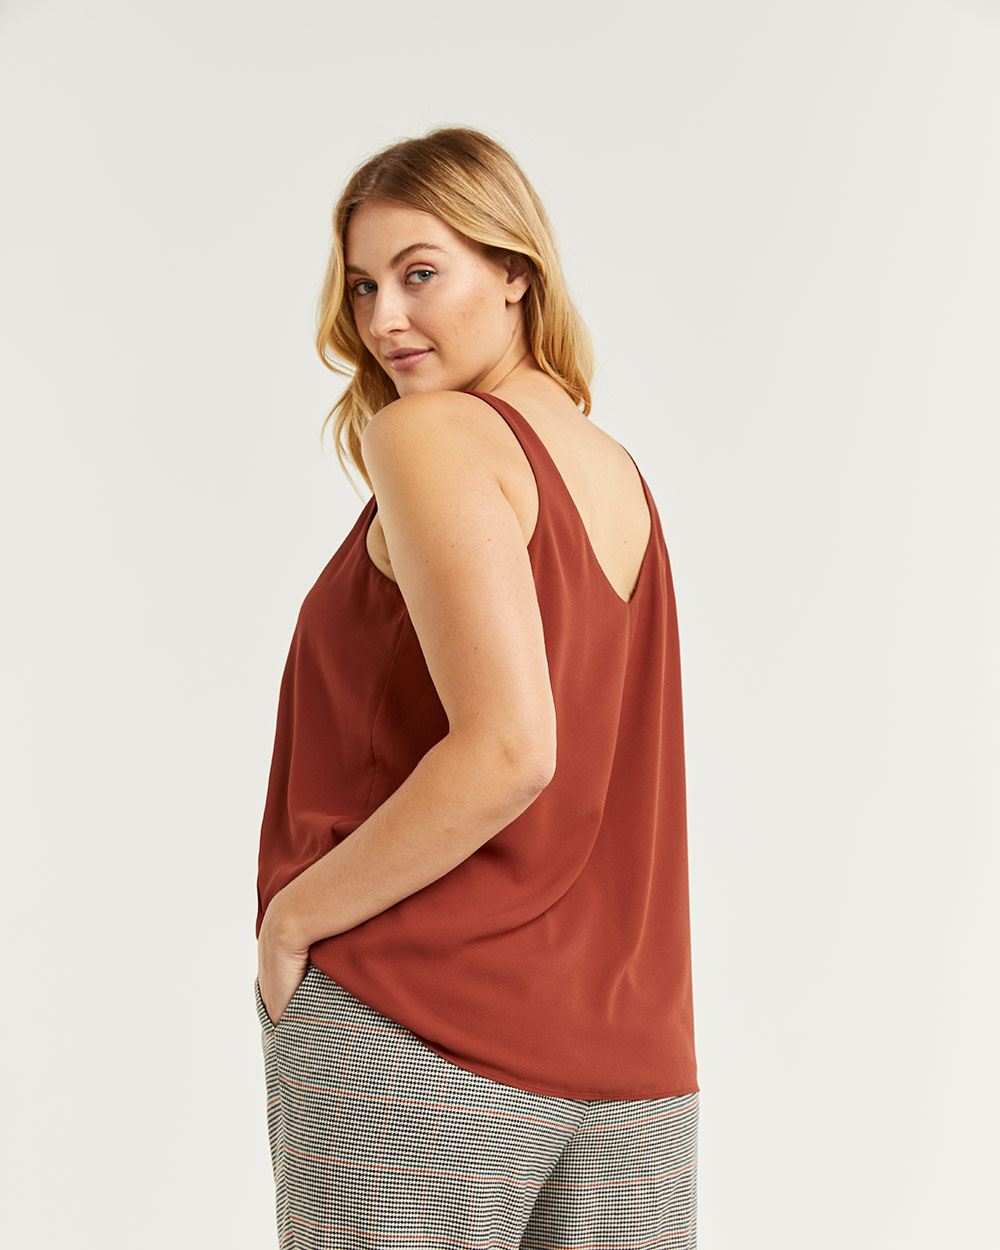 R Essentials Reversible Tank Top